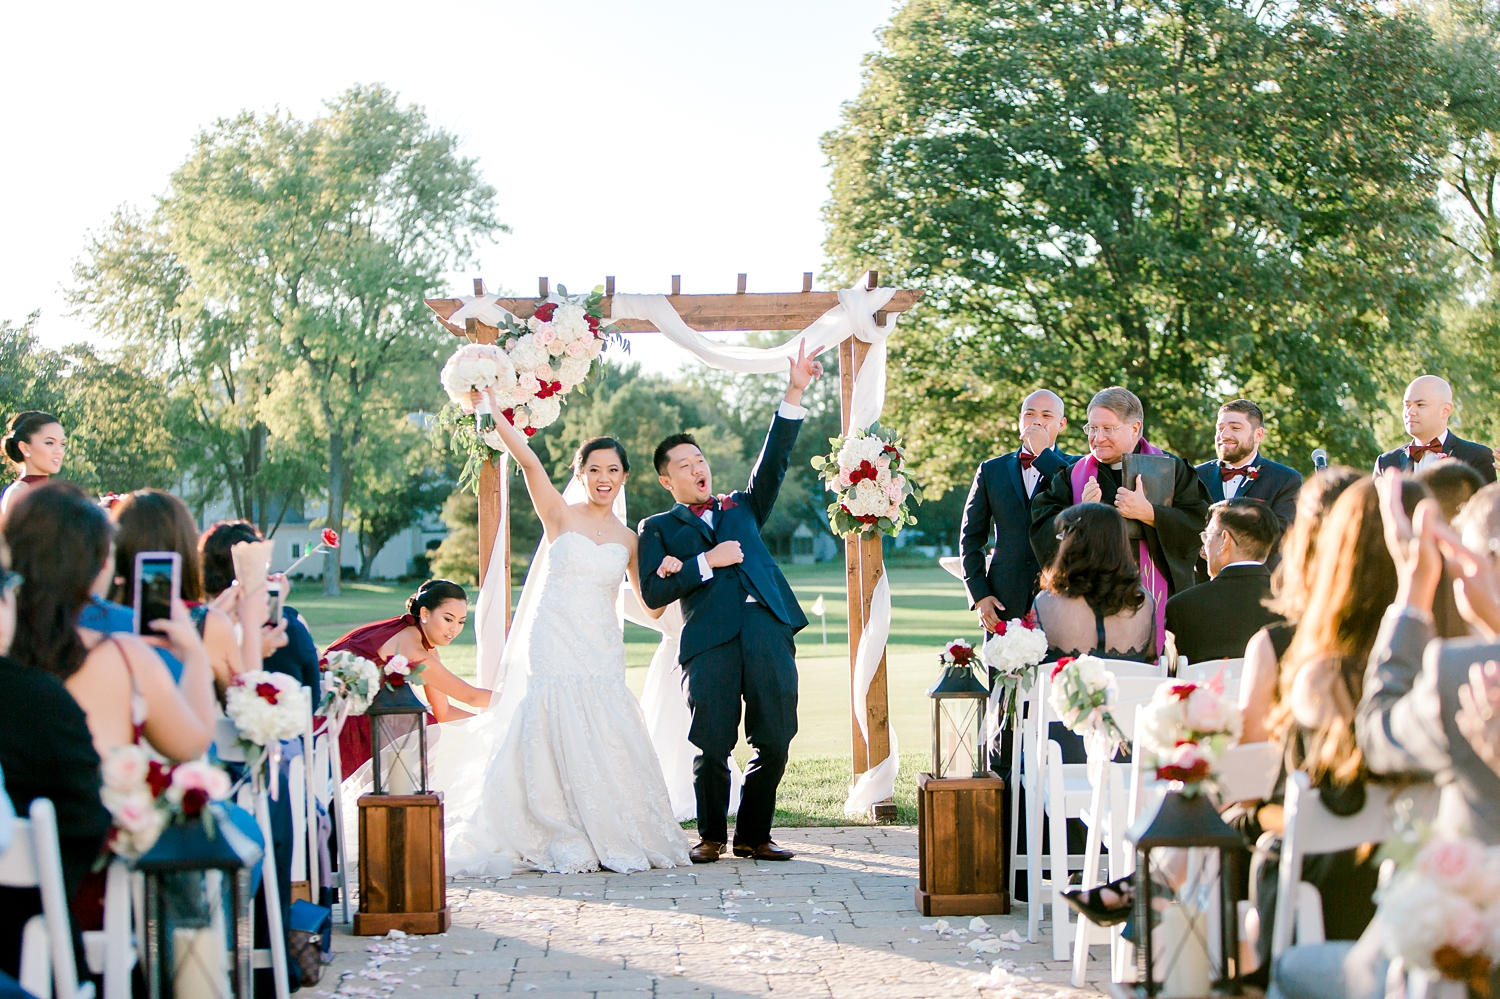 Find Best Chicago Wedding Photographer | Get Our Special Offers Today